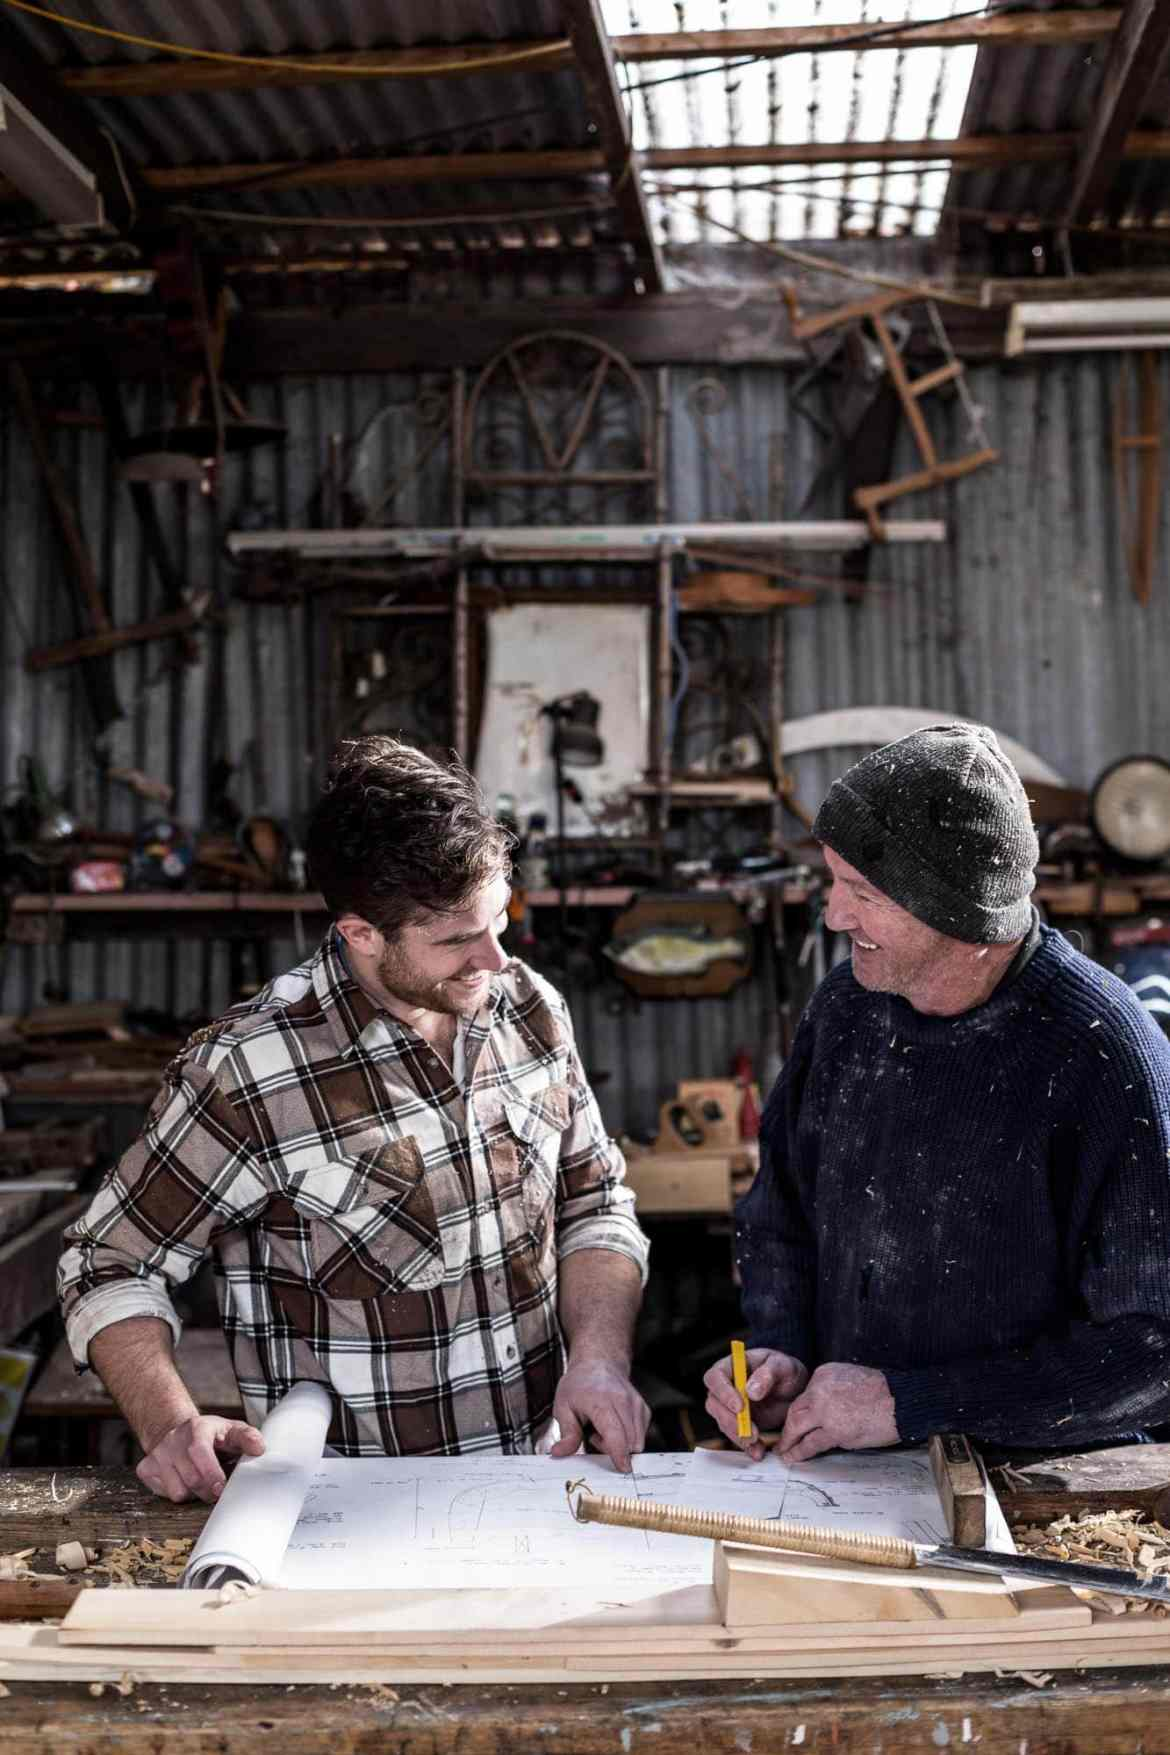 Portrait photography of a father and son in a shed